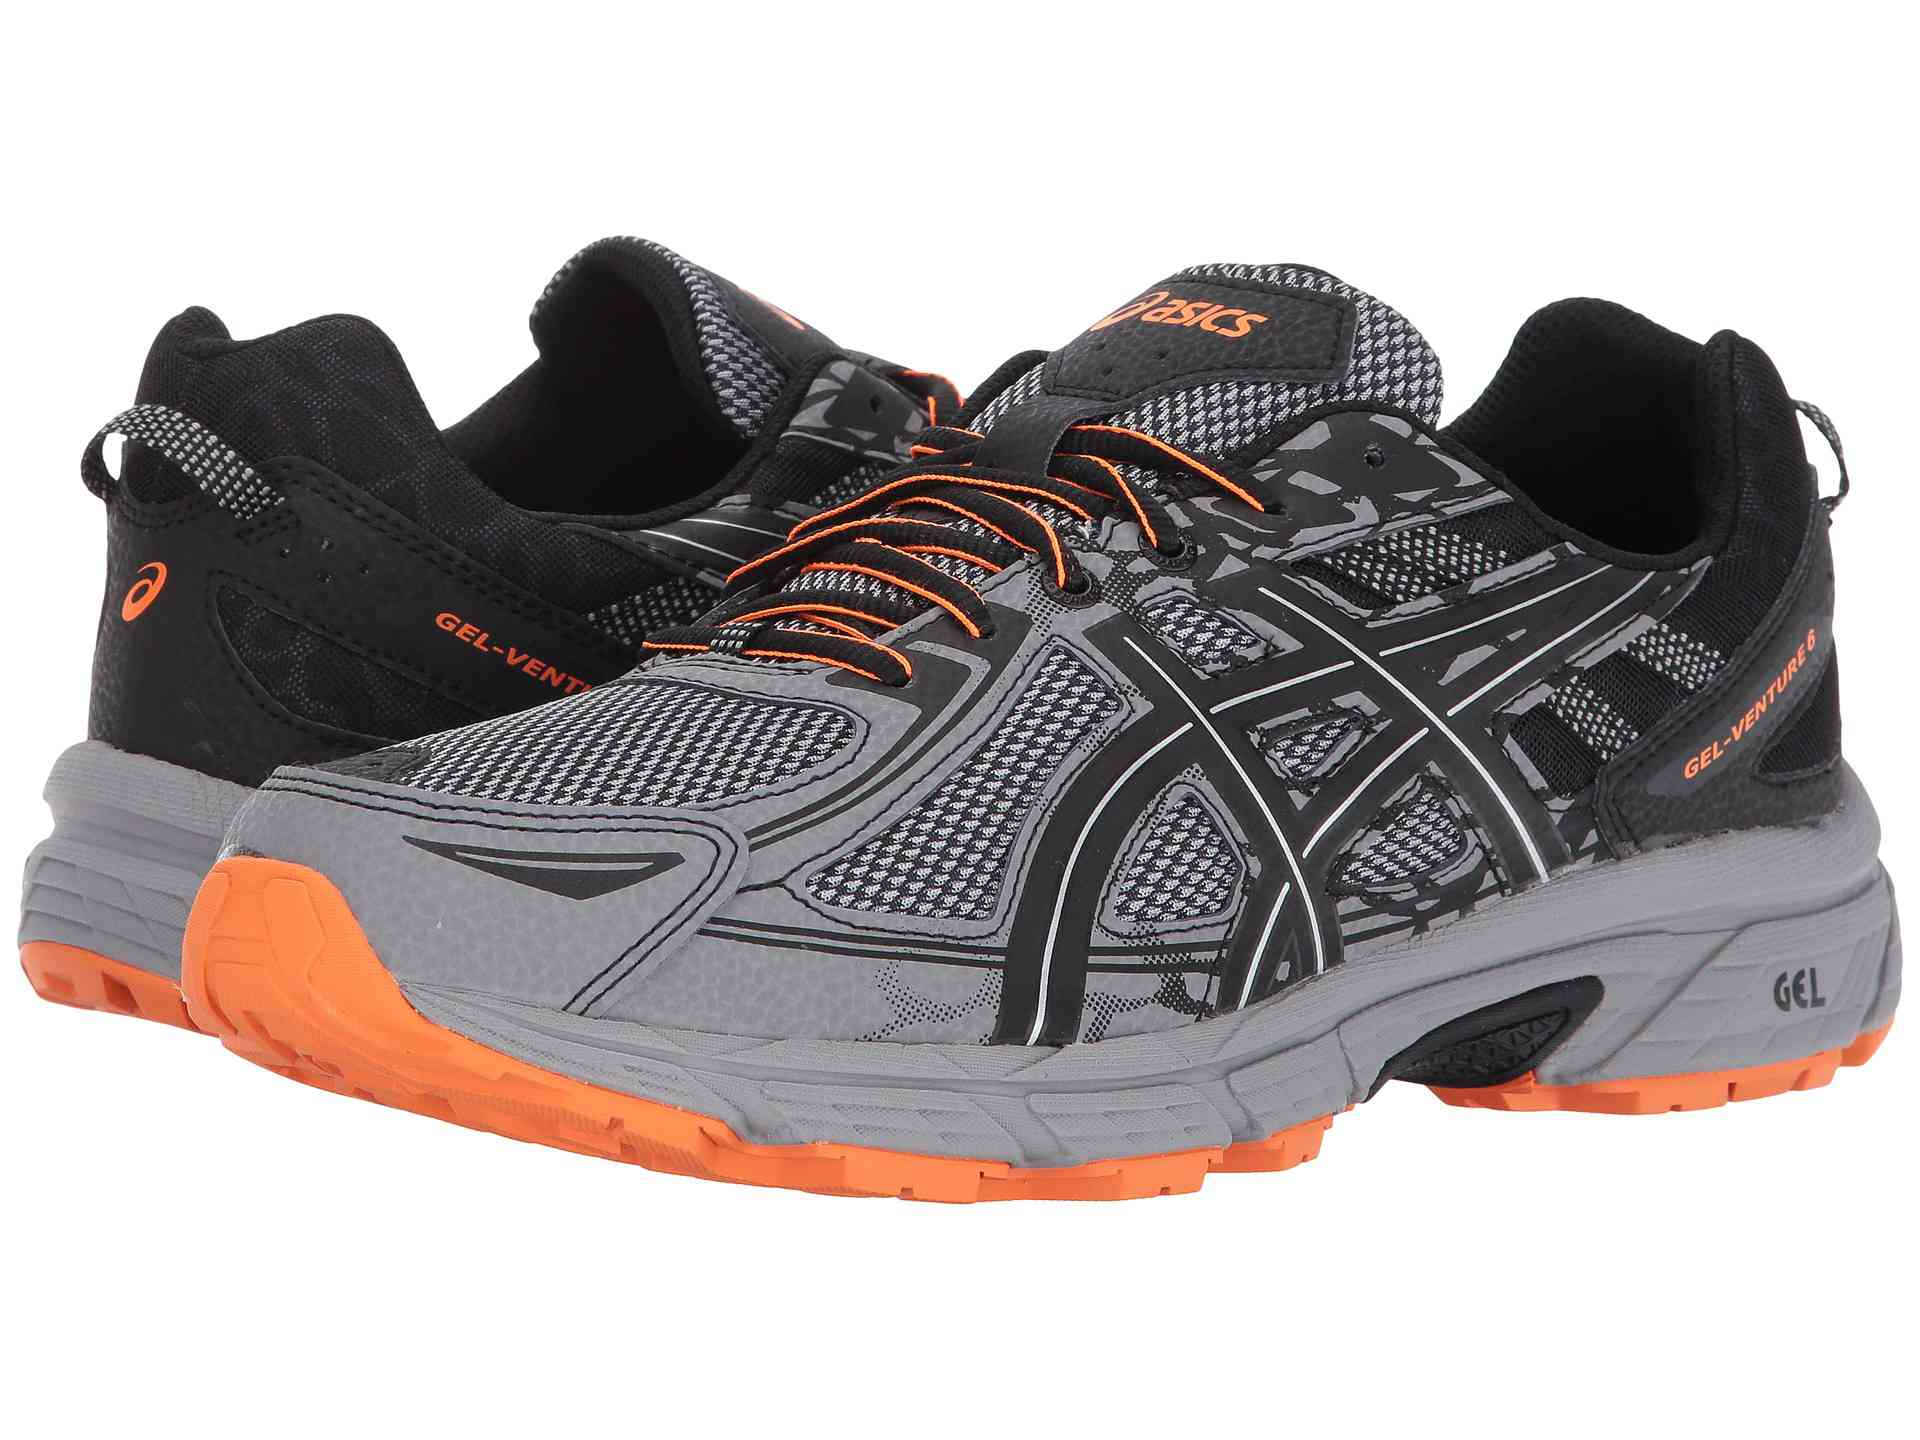 0fd7ca461027 The 7 Best Men s Running Shoes for Plantar Fasciitis of 2019